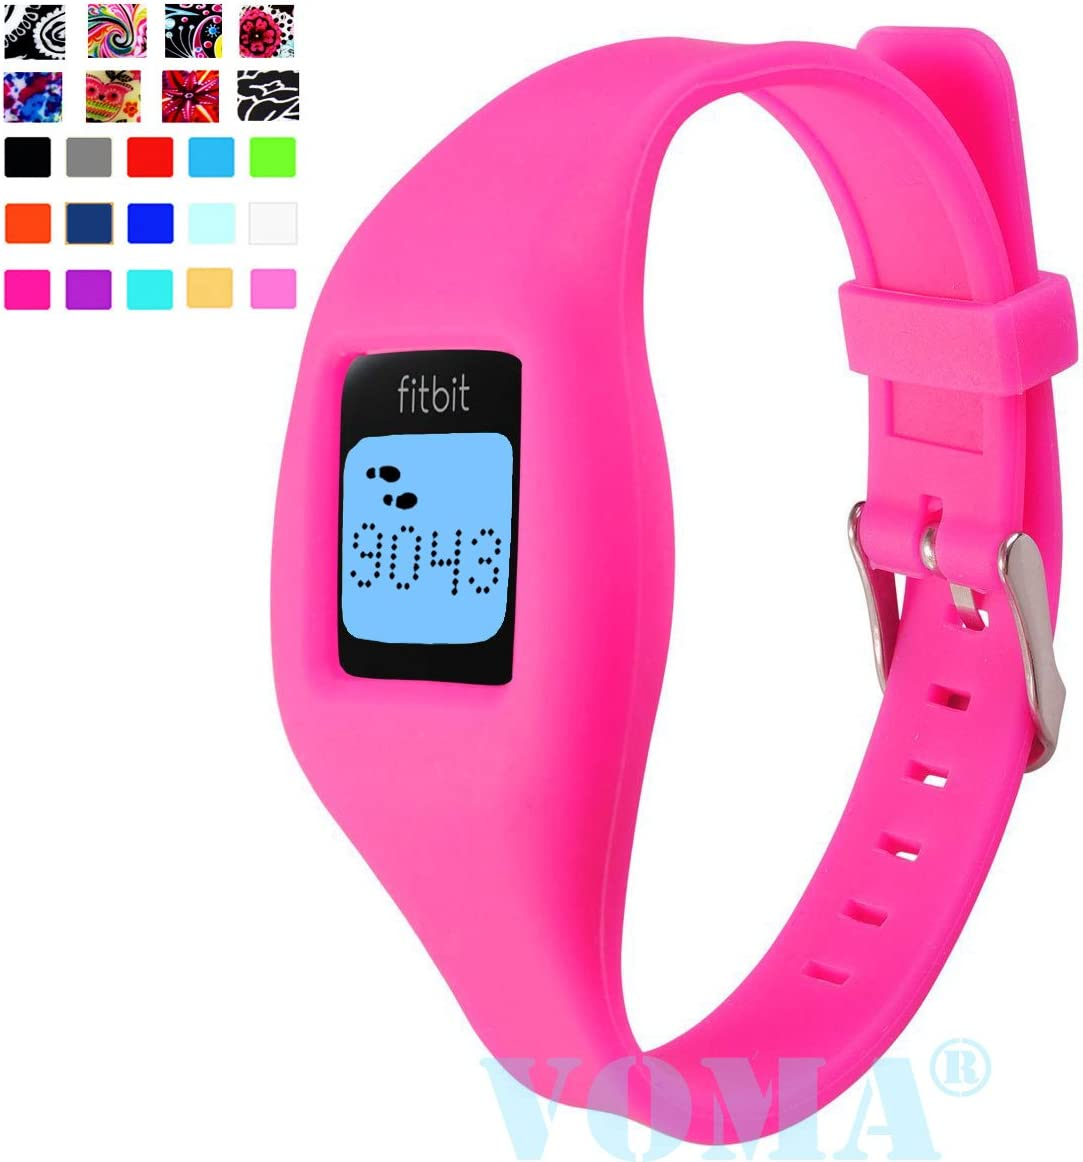 for USA Fitbit Zip Wristband Fitbit Band Fitbit Zip Band Fitbit Wristband Fitbit Bracelet Fitbit Zip Replacement Band Hot Pink